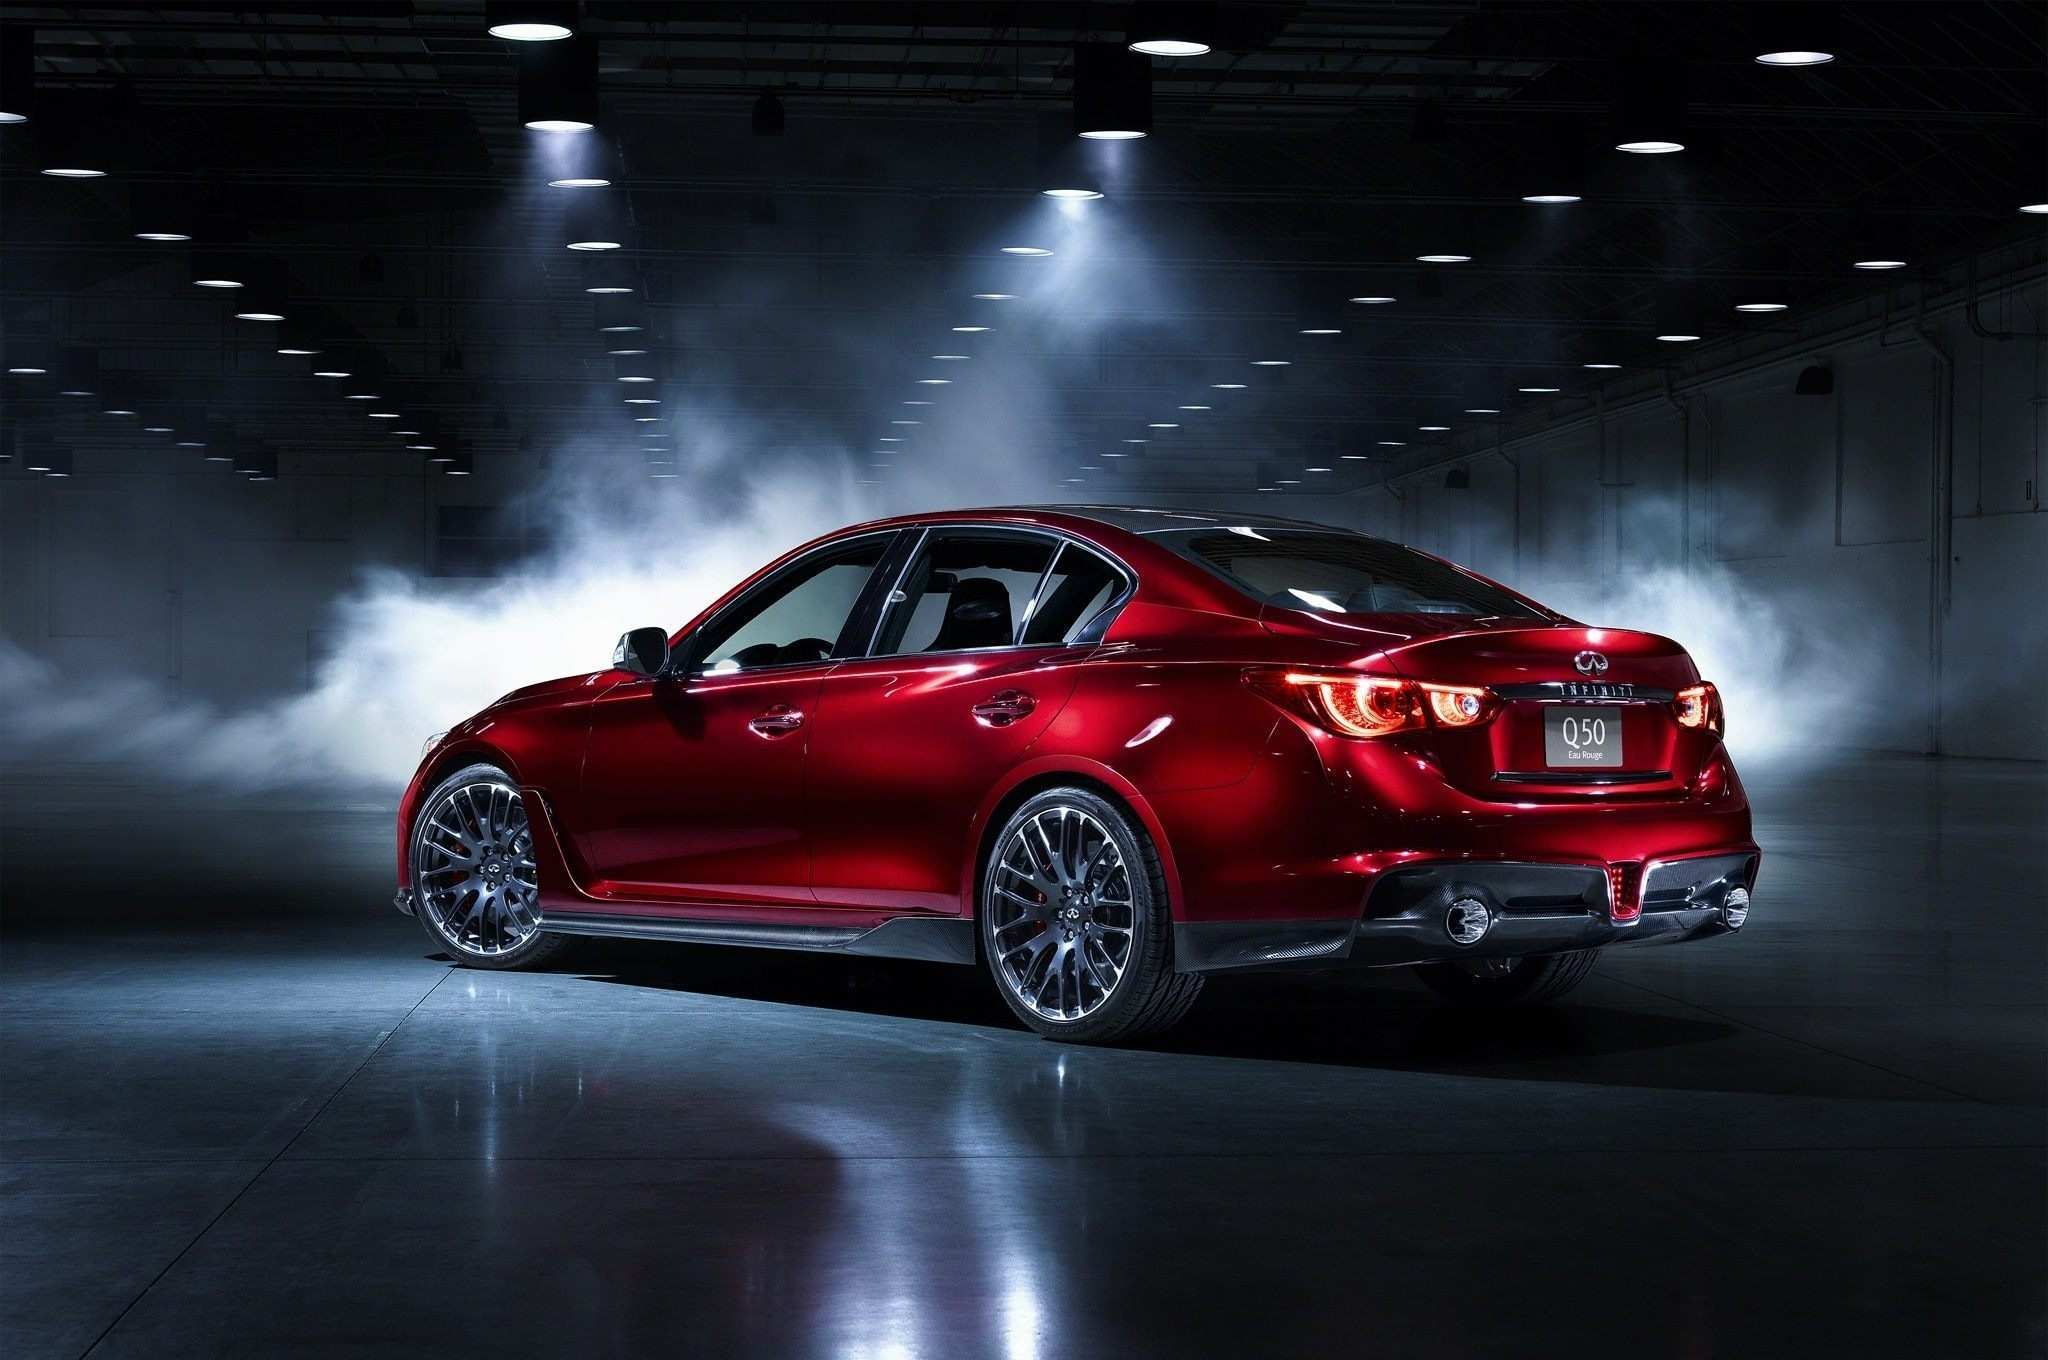 39 New 2020 Infiniti Q50 Coupe Eau Rouge Price Design And Review